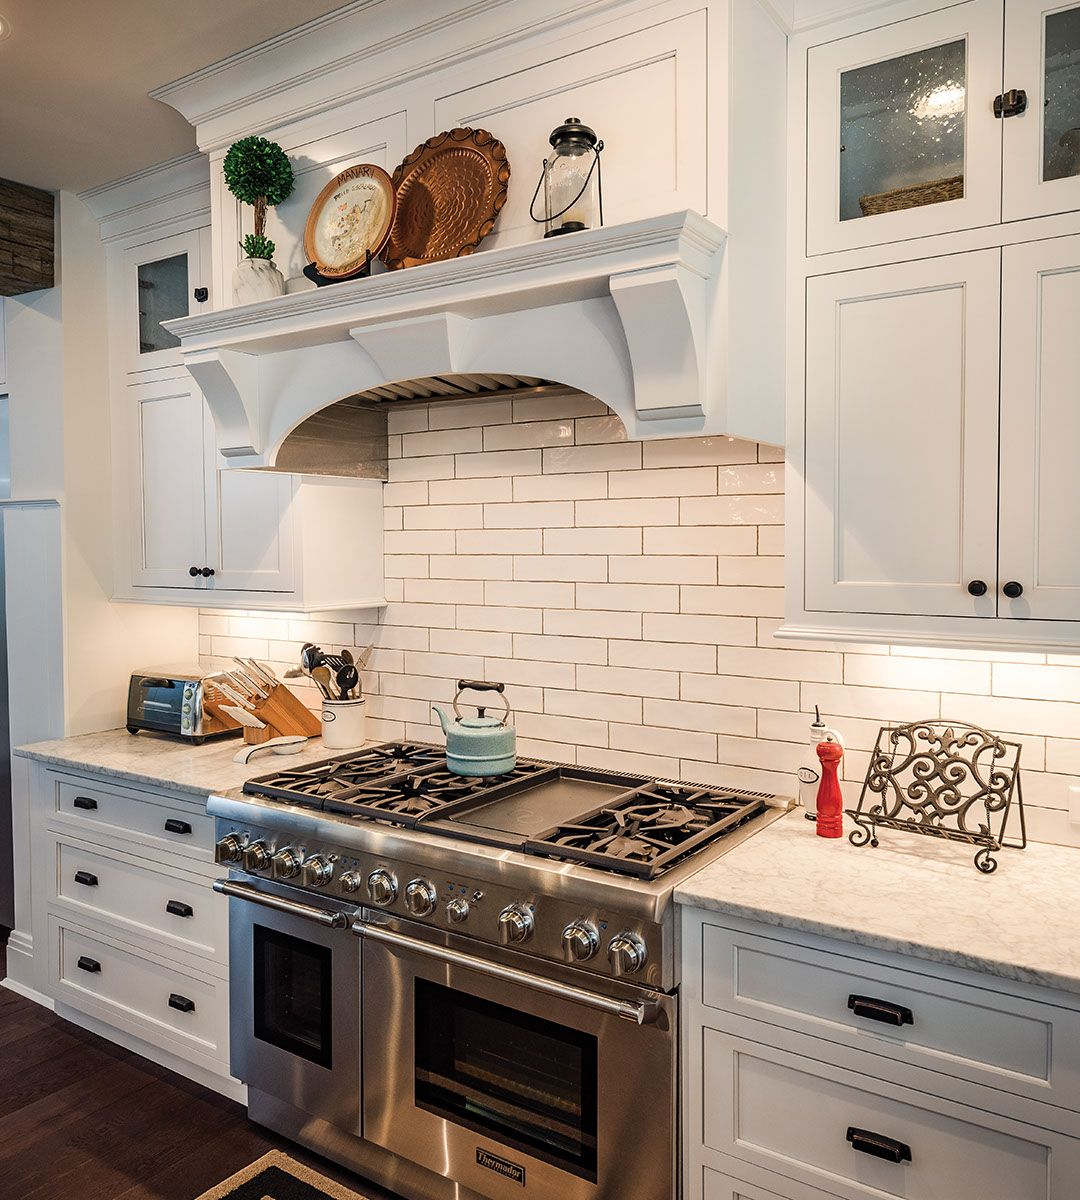 Shiloh Cabinetry - Gallery 4 (With images) | Shiloh ...